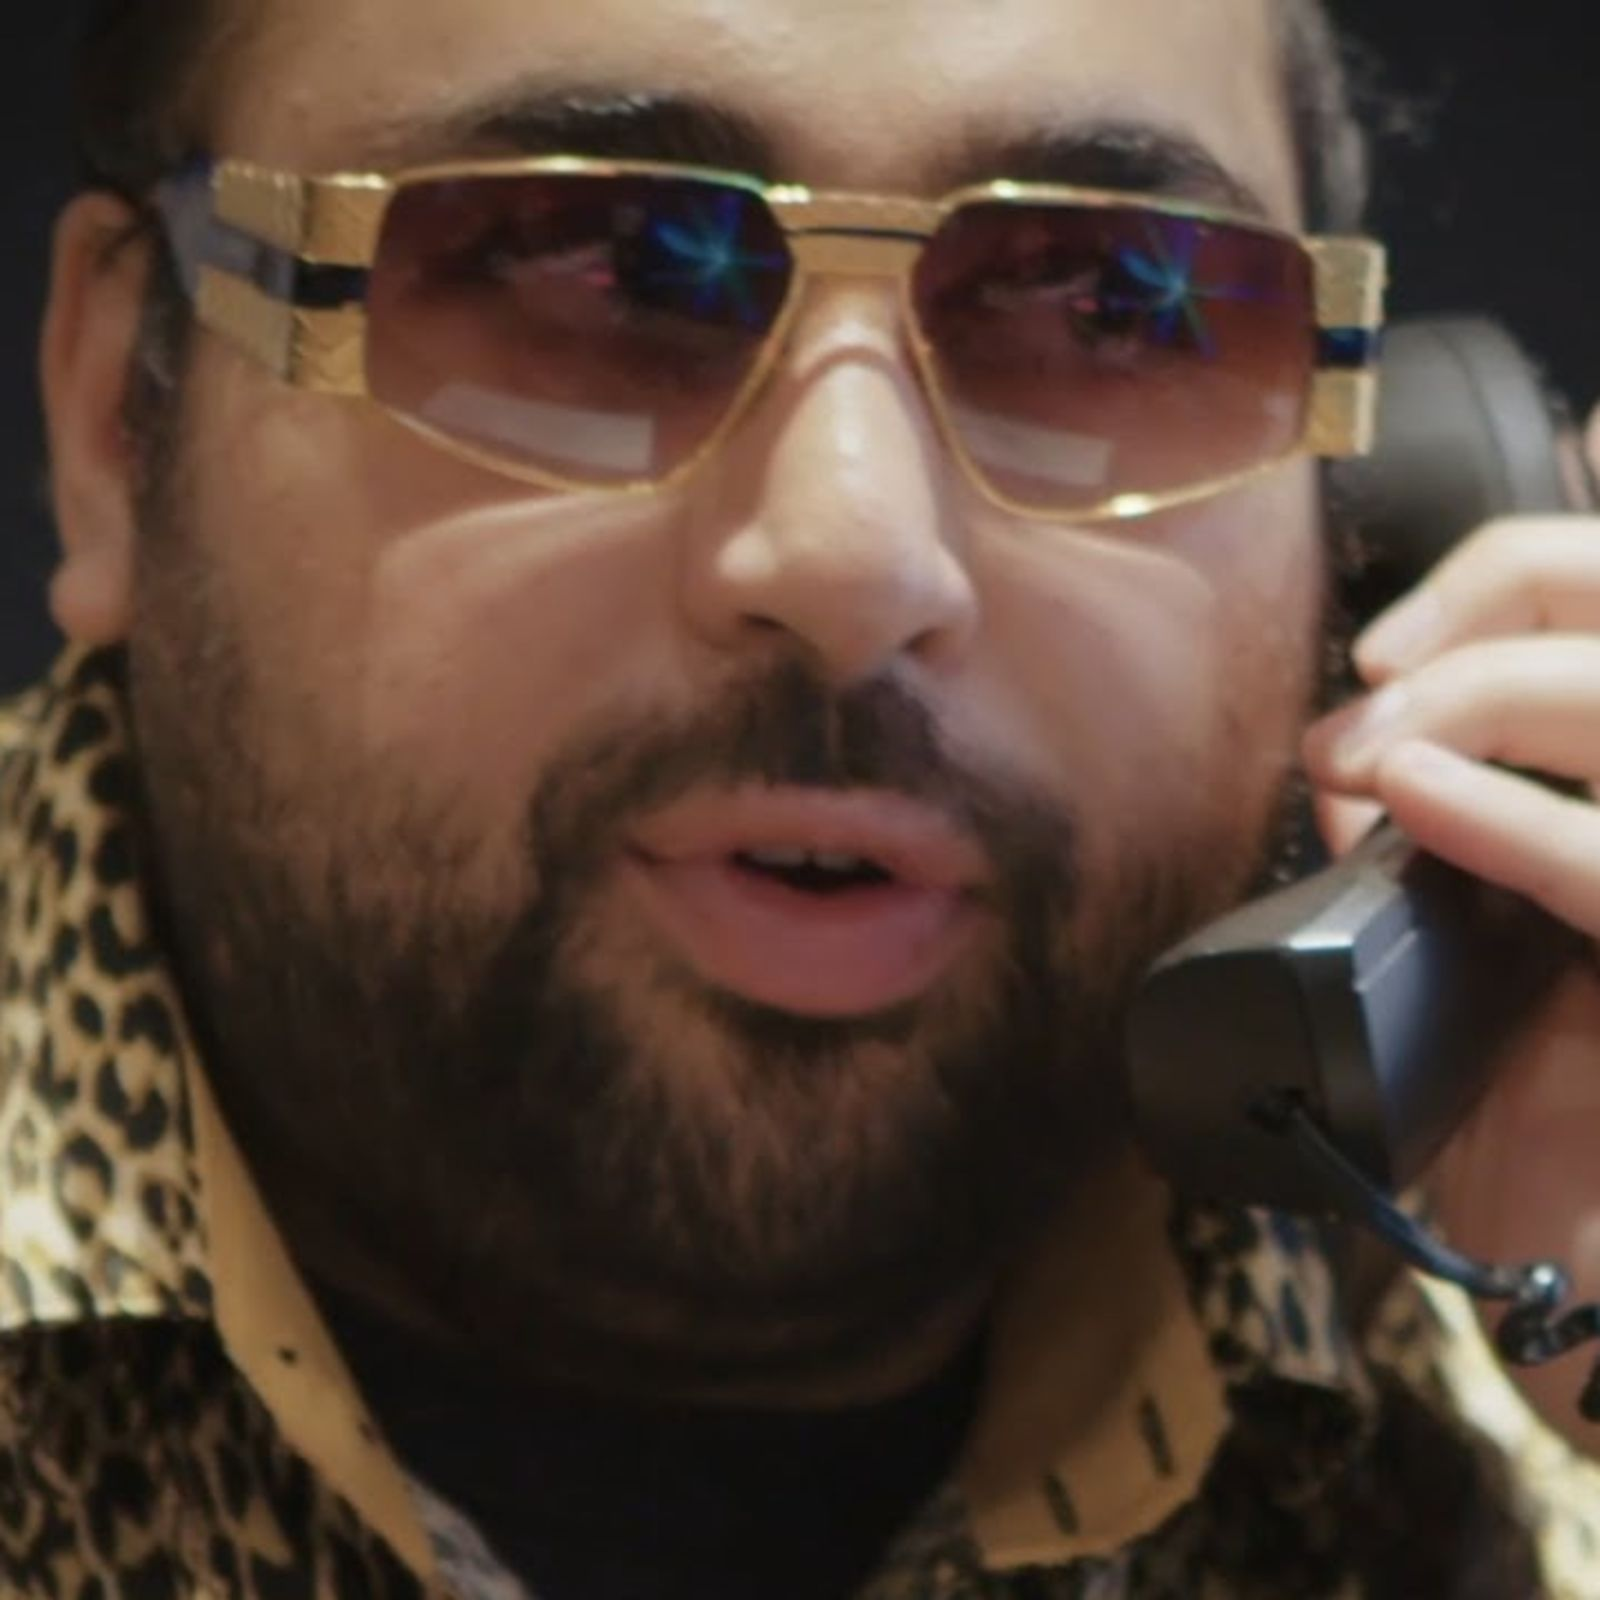 Kurupt FM takes over GQ for the day